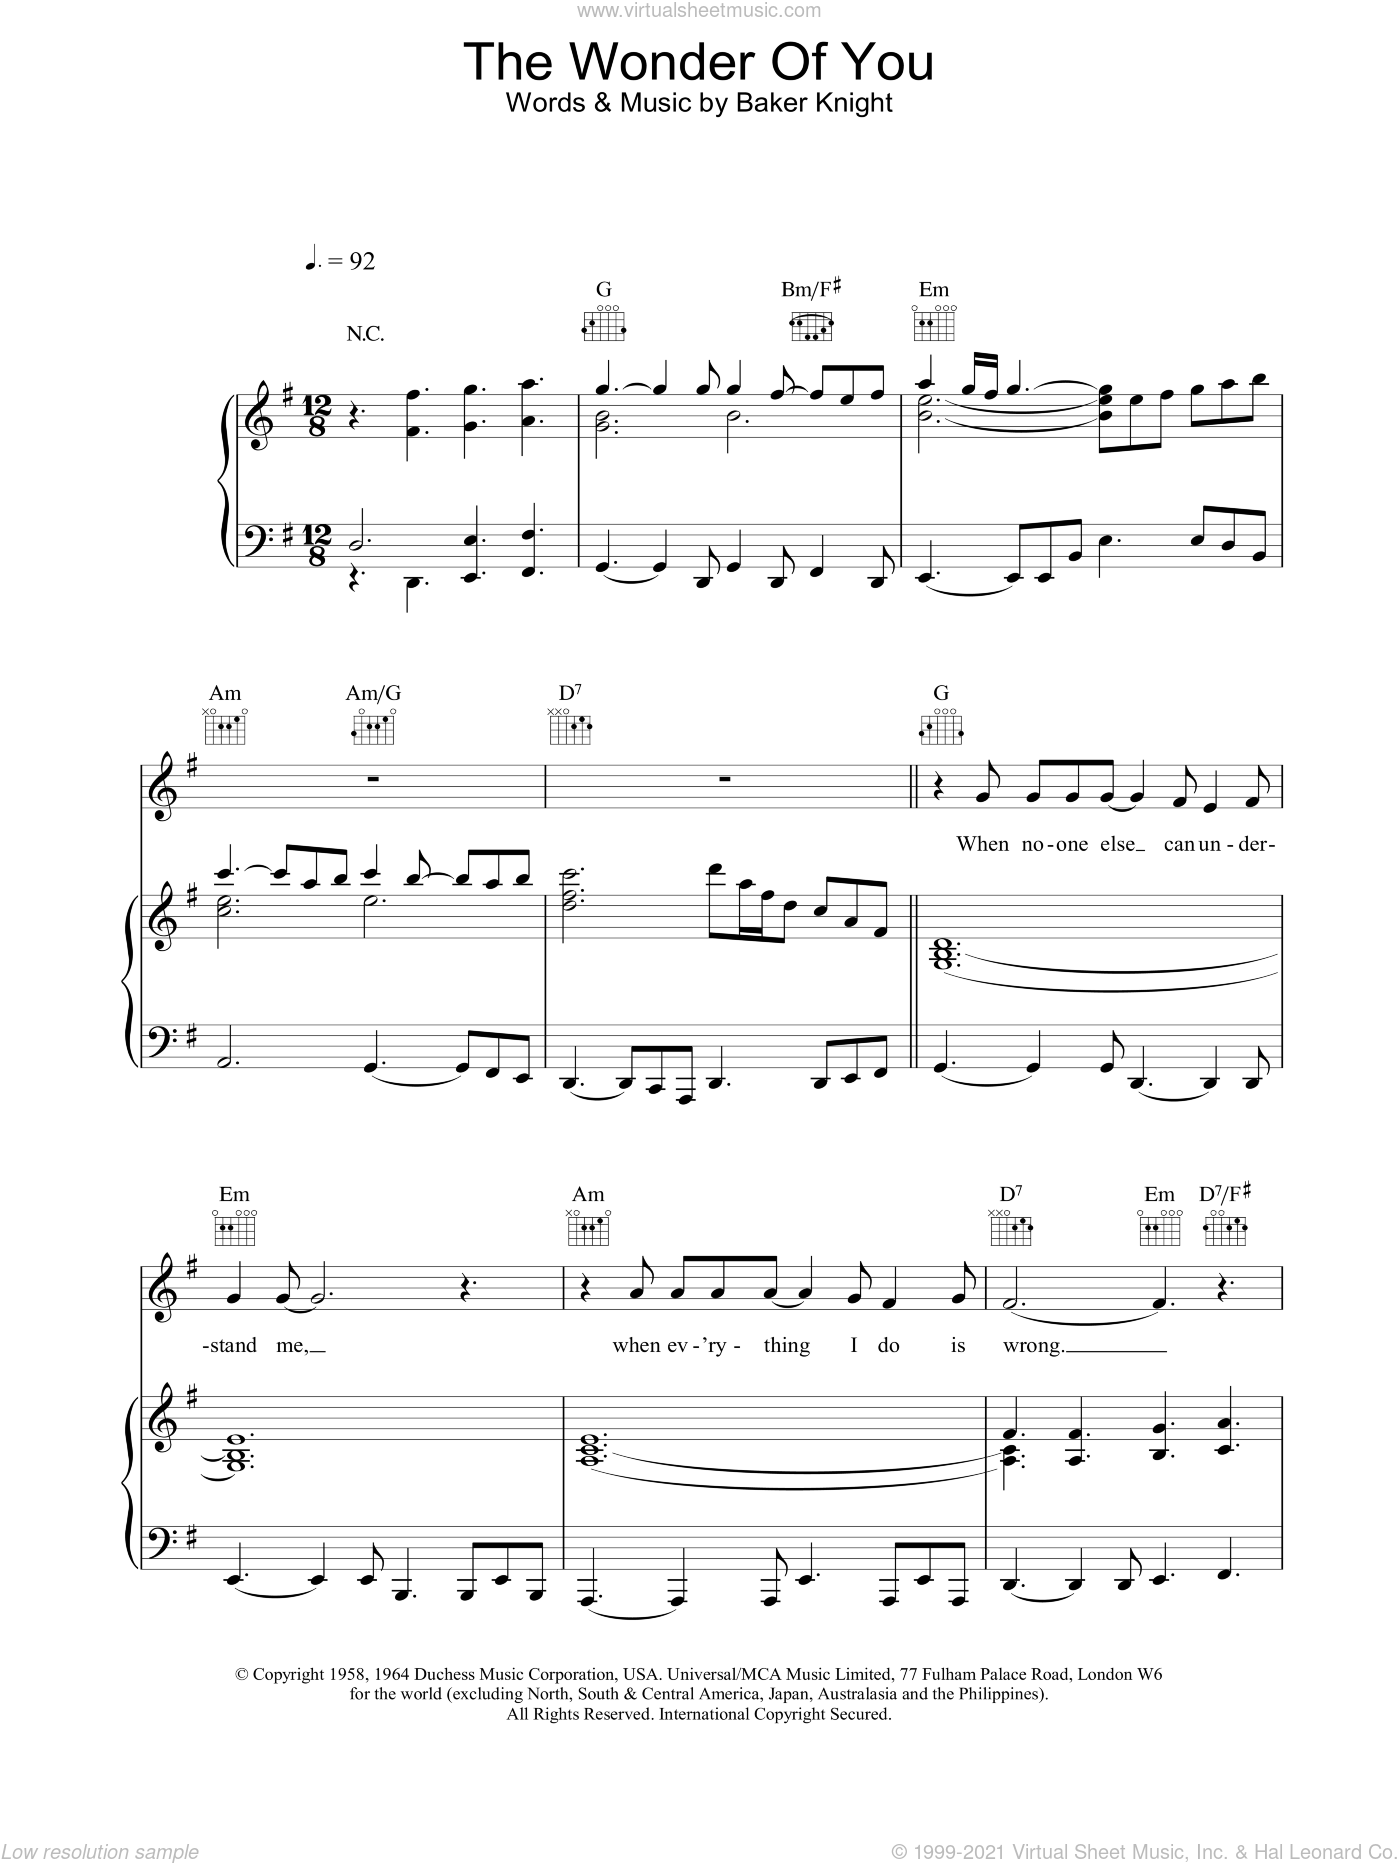 The Wonder Of You sheet music for voice, piano or guitar by Baker Knight and Elvis Presley. Score Image Preview.